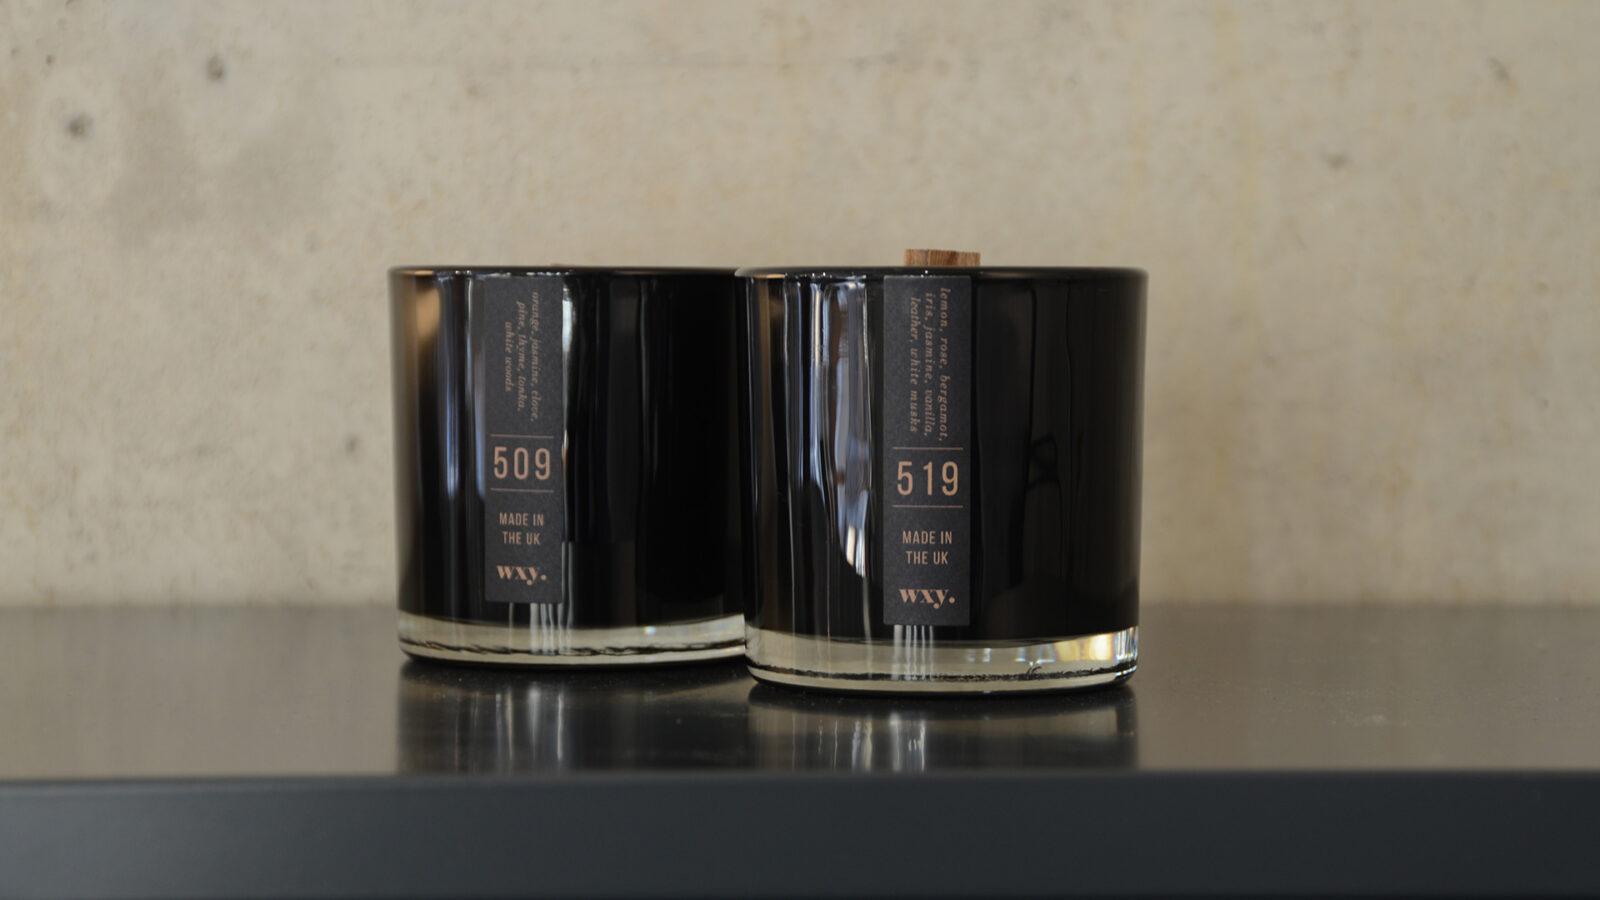 Black wax woodwick scented candles in sophisticated black glass jars